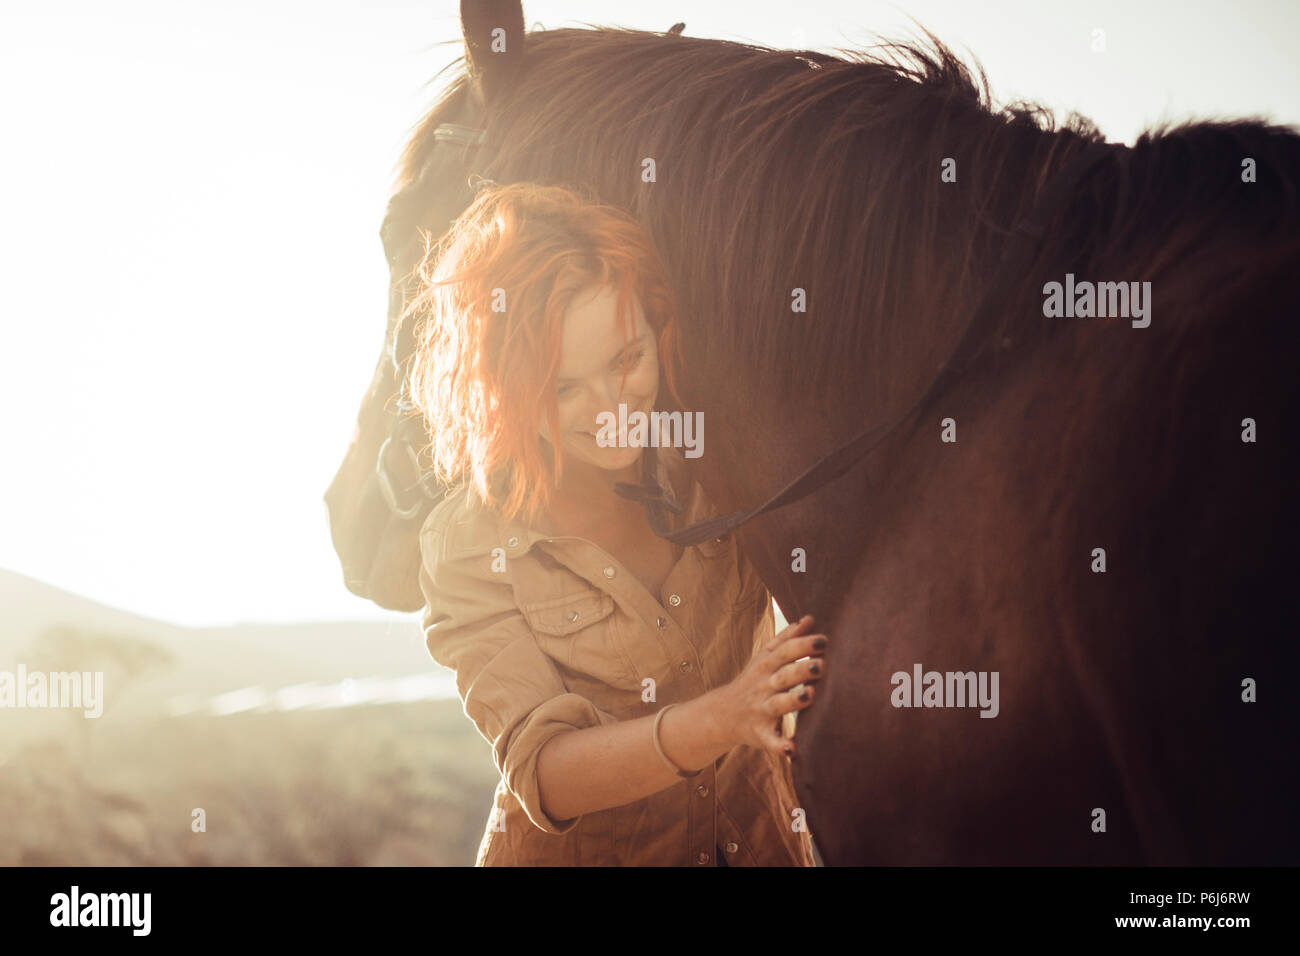 real love and friendship concept between nice beautiful caucasian lady and amazing horse. sunset time and backlight. sweetness and tenderness in horse - Stock Image